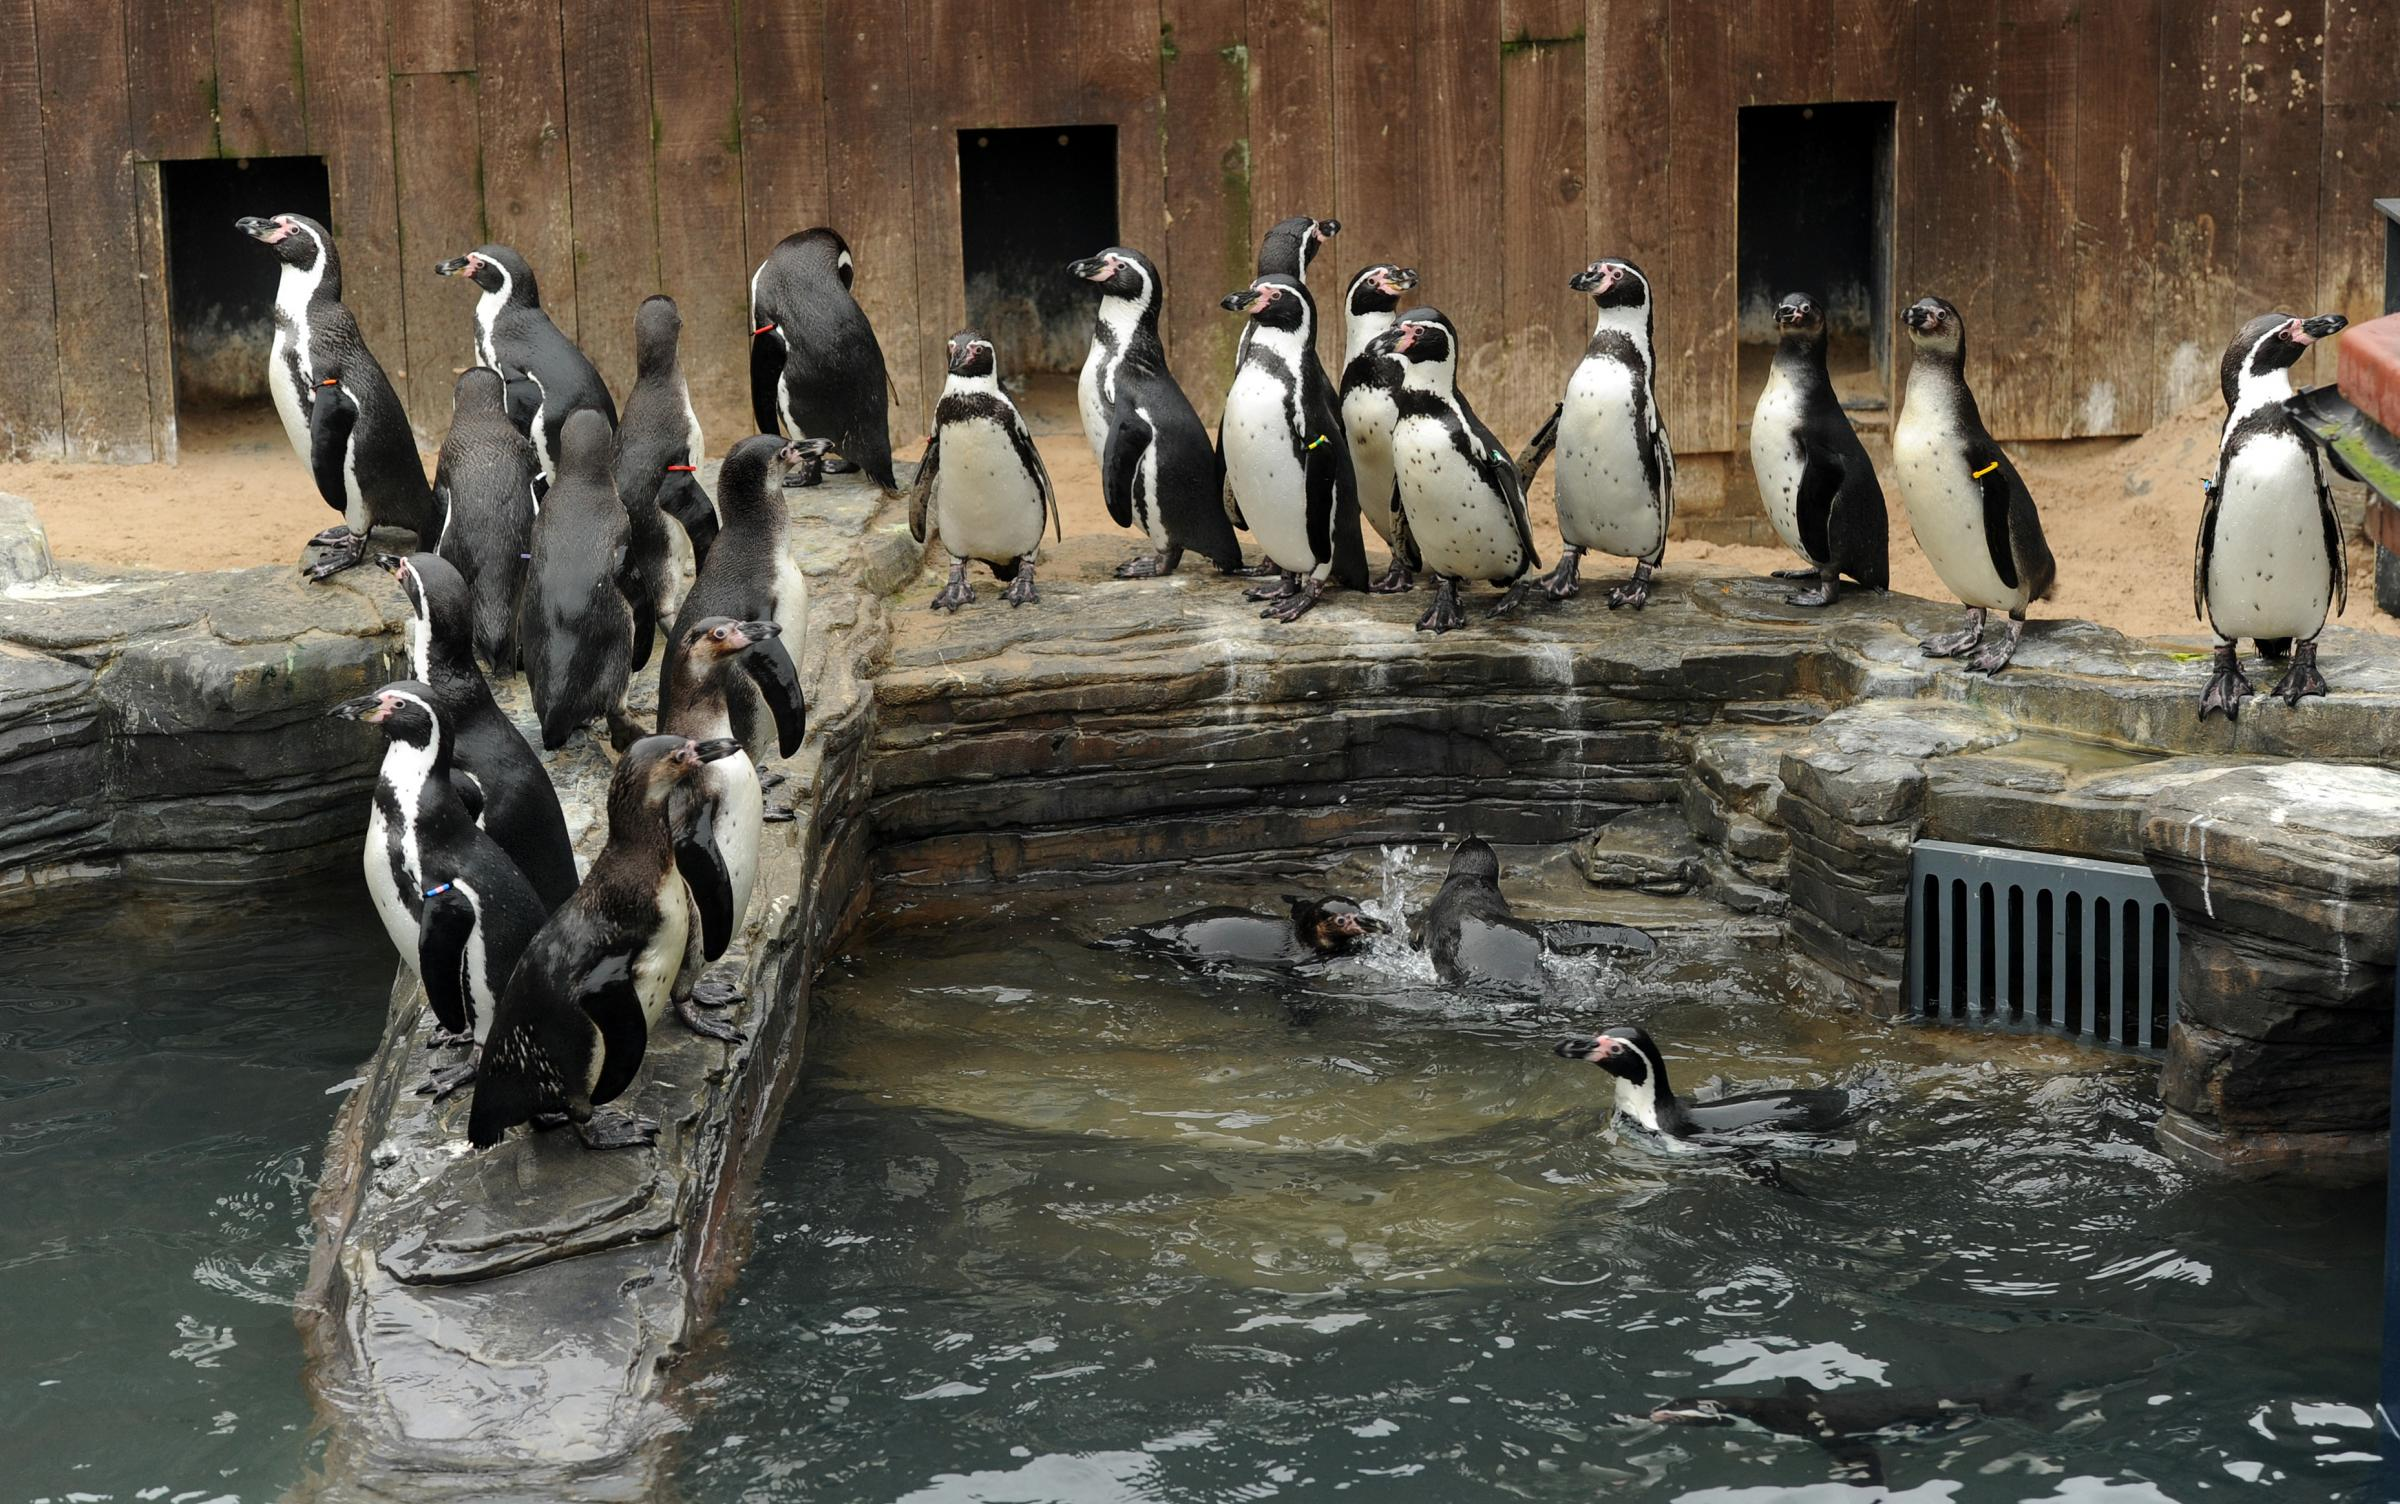 The penguins are reunited in their new surroundings in Great Yarmouth